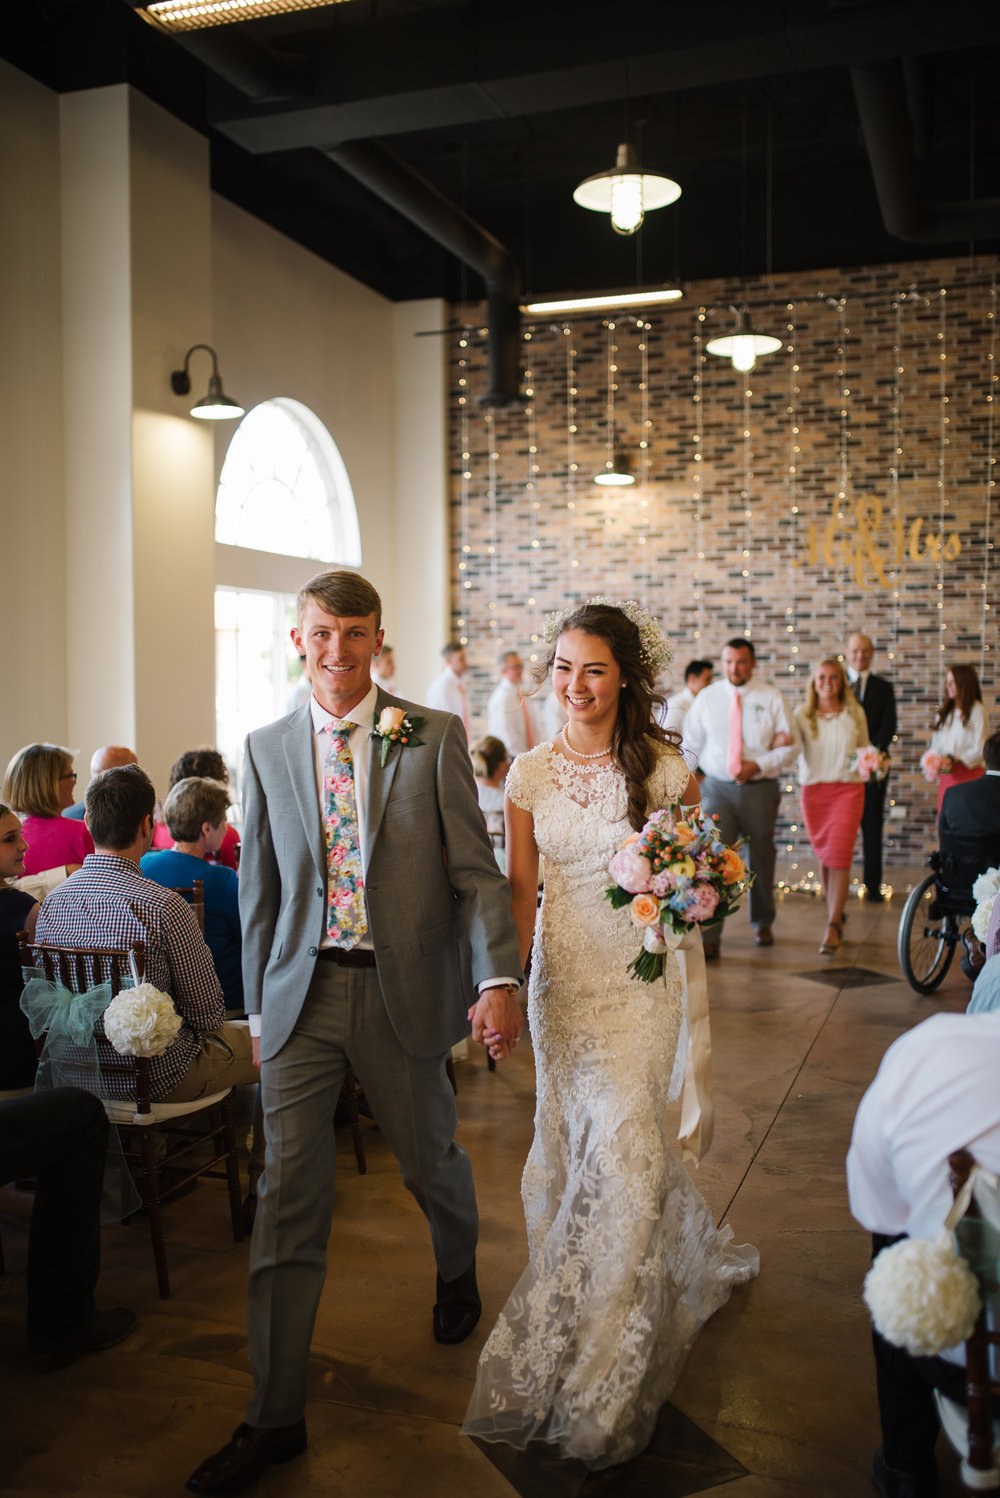 CarriGeorgeWedding_JTP2017_022.jpg